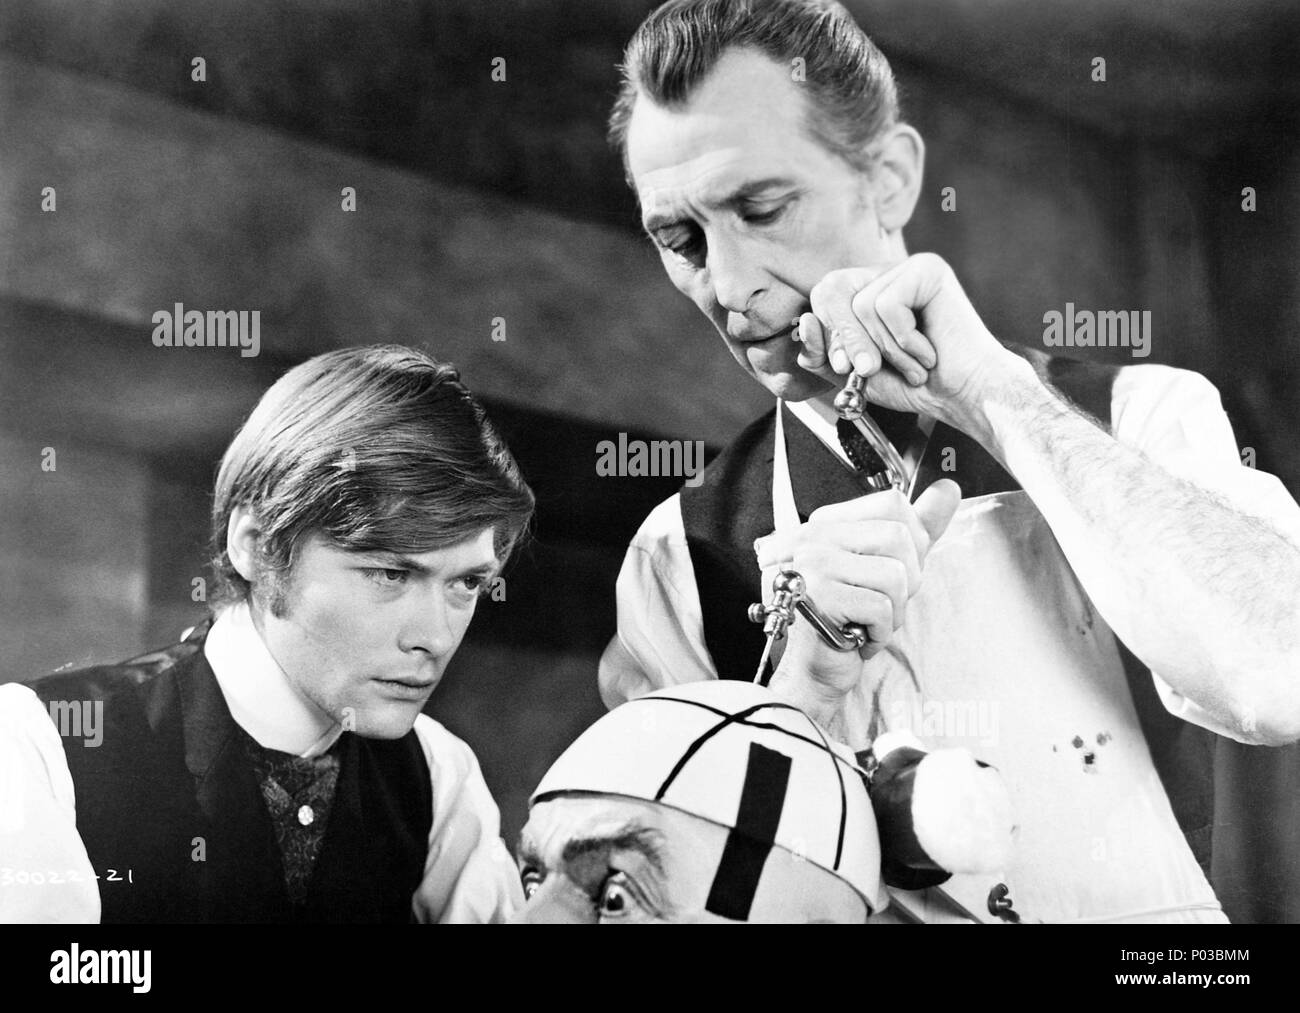 Original Film Title: FRANKENSTEIN MUST BE DESTROYED.  English Title: FRANKENSTEIN MUST BE DESTROYED.  Film Director: TERENCE FISHER.  Year: 1969.  Stars: PETER CUSHING. Credit: HAMMER/WARNER BROTHERS / Album Stock Photo